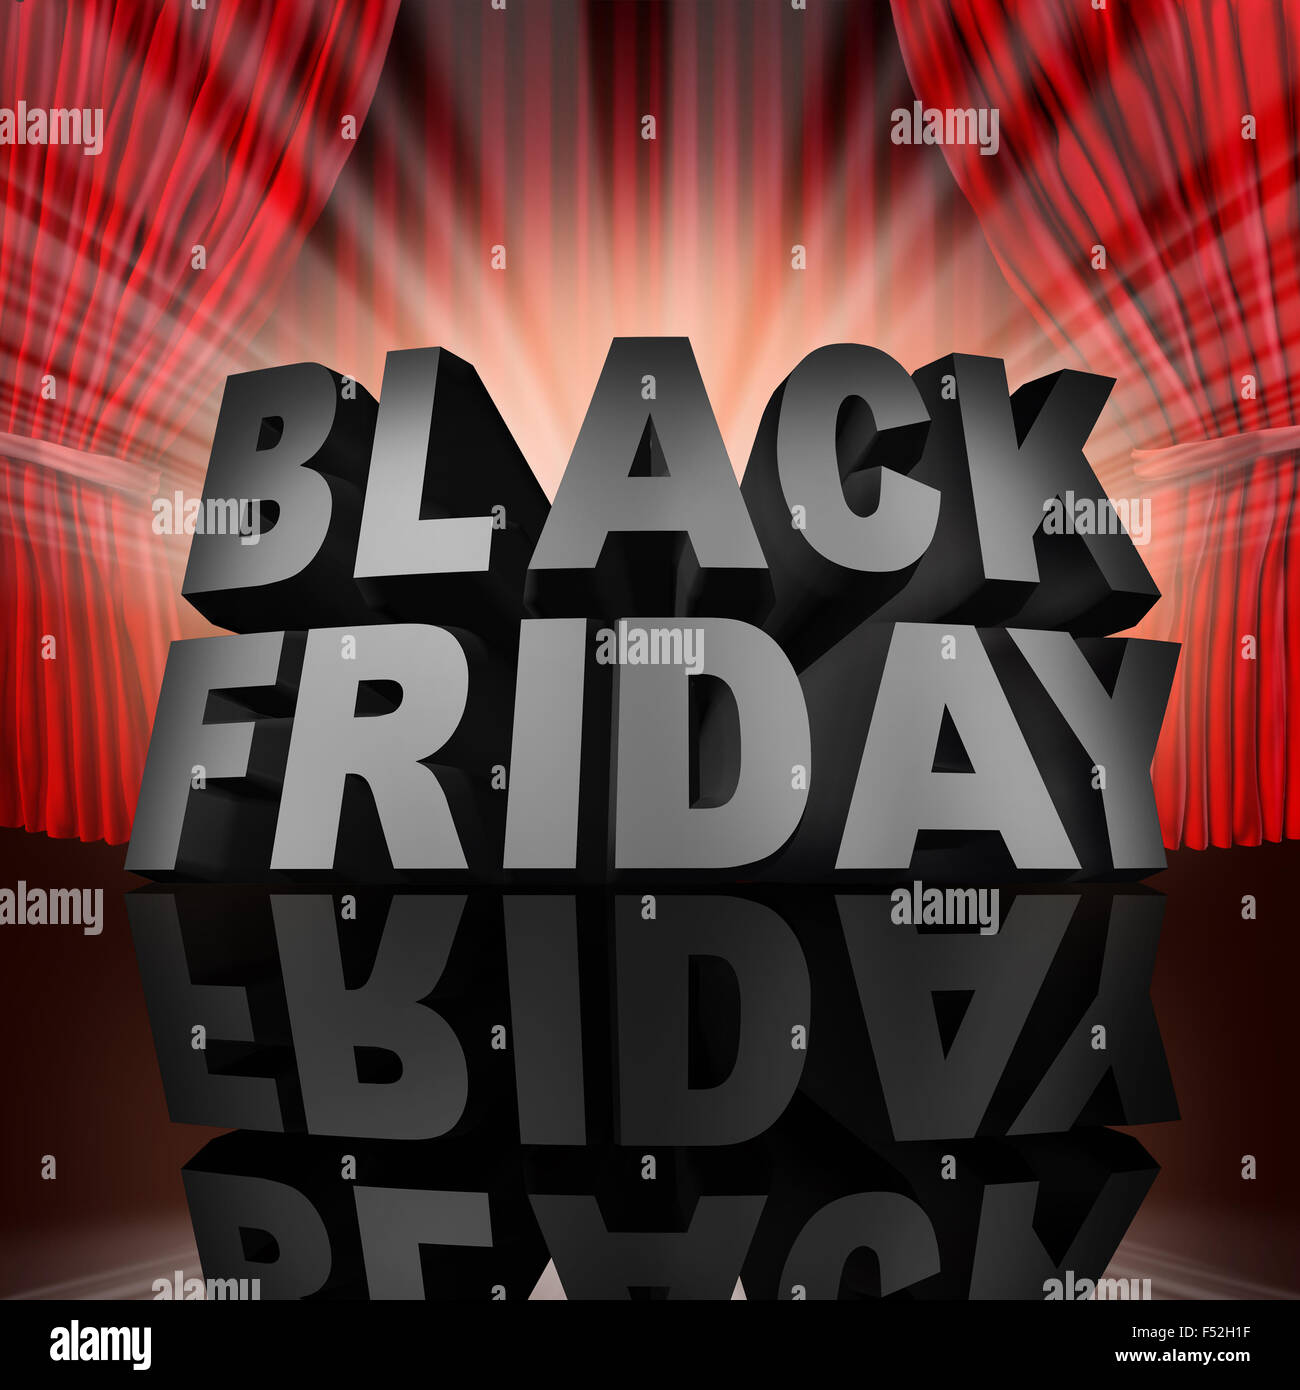 Black Friday Event Sale Banner Sign As Text On Stage With Red Stock Photo Alamy